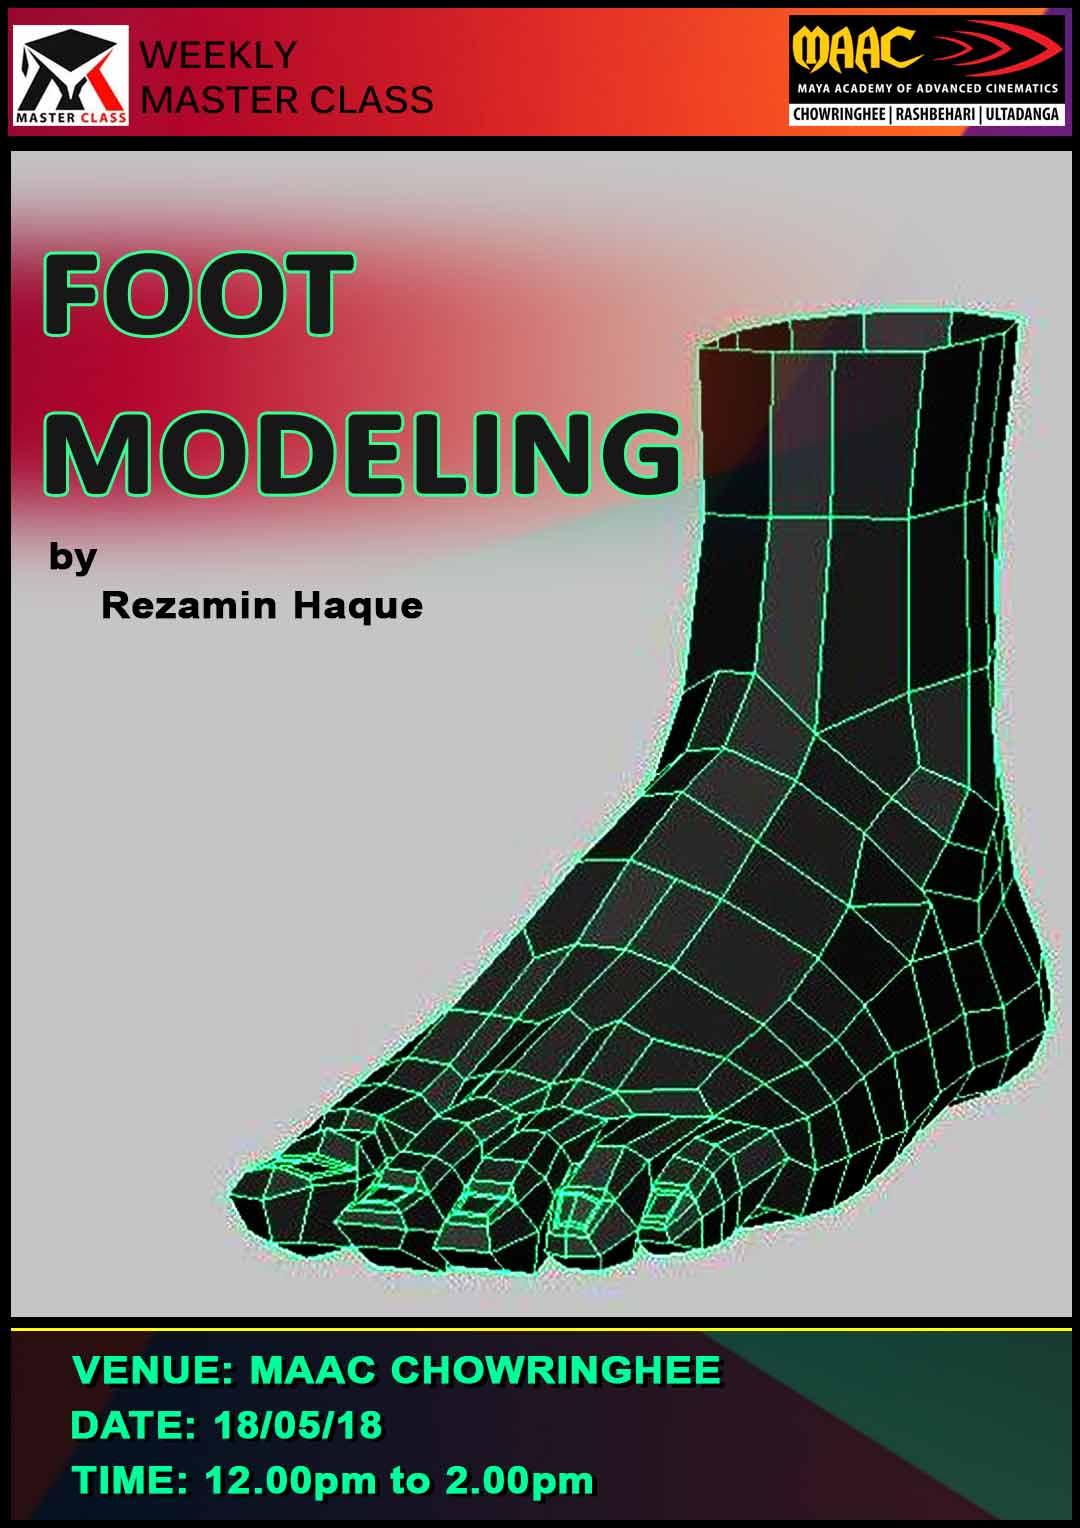 Weekly Master Class on Foot Modeling